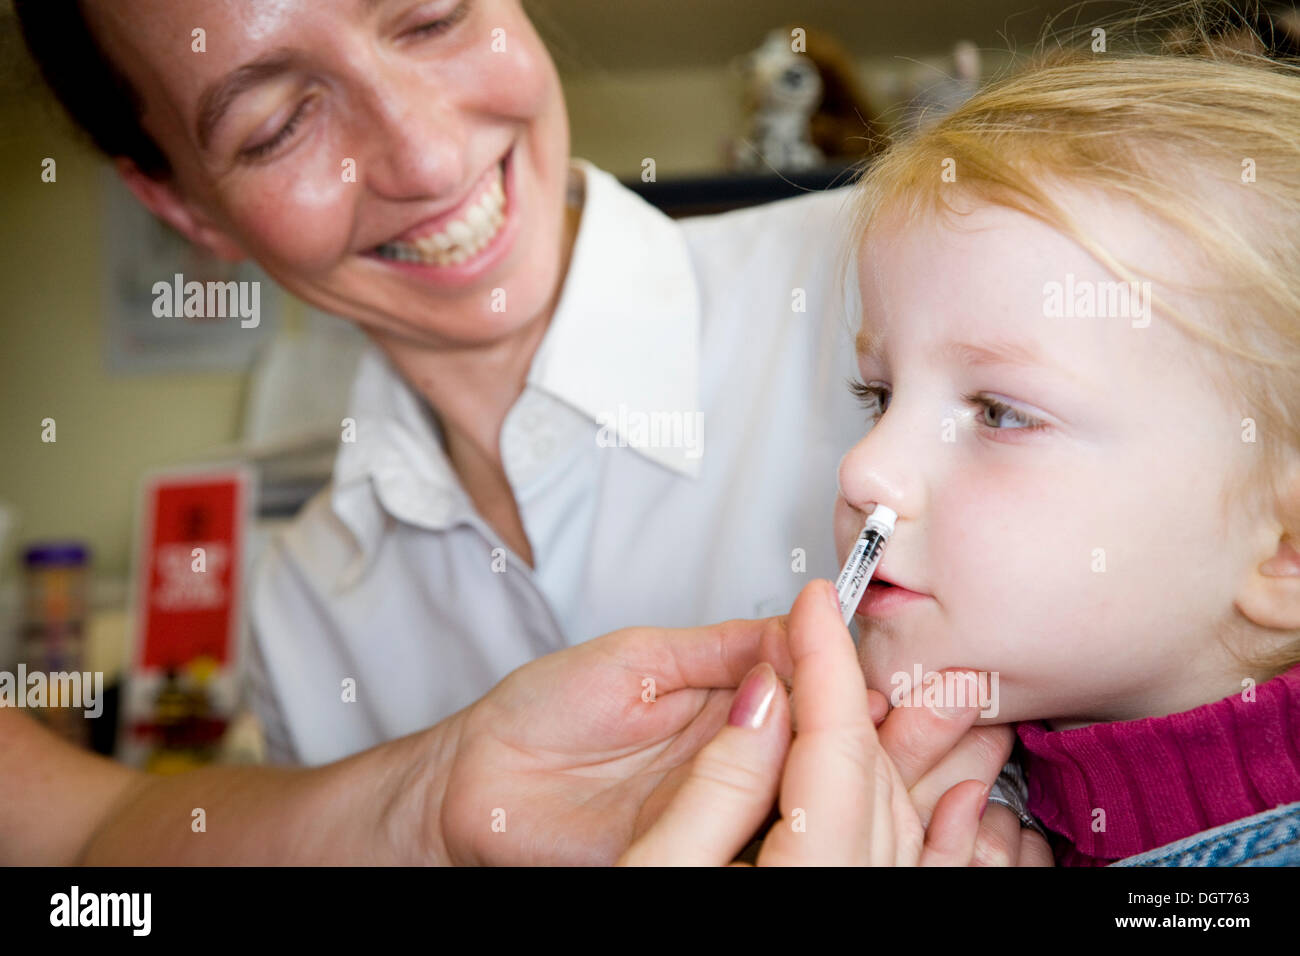 Three and a half year old child, accompanied by her mum / mother, receives a dose of the new flu vaccine - Fluenz Stock Photo